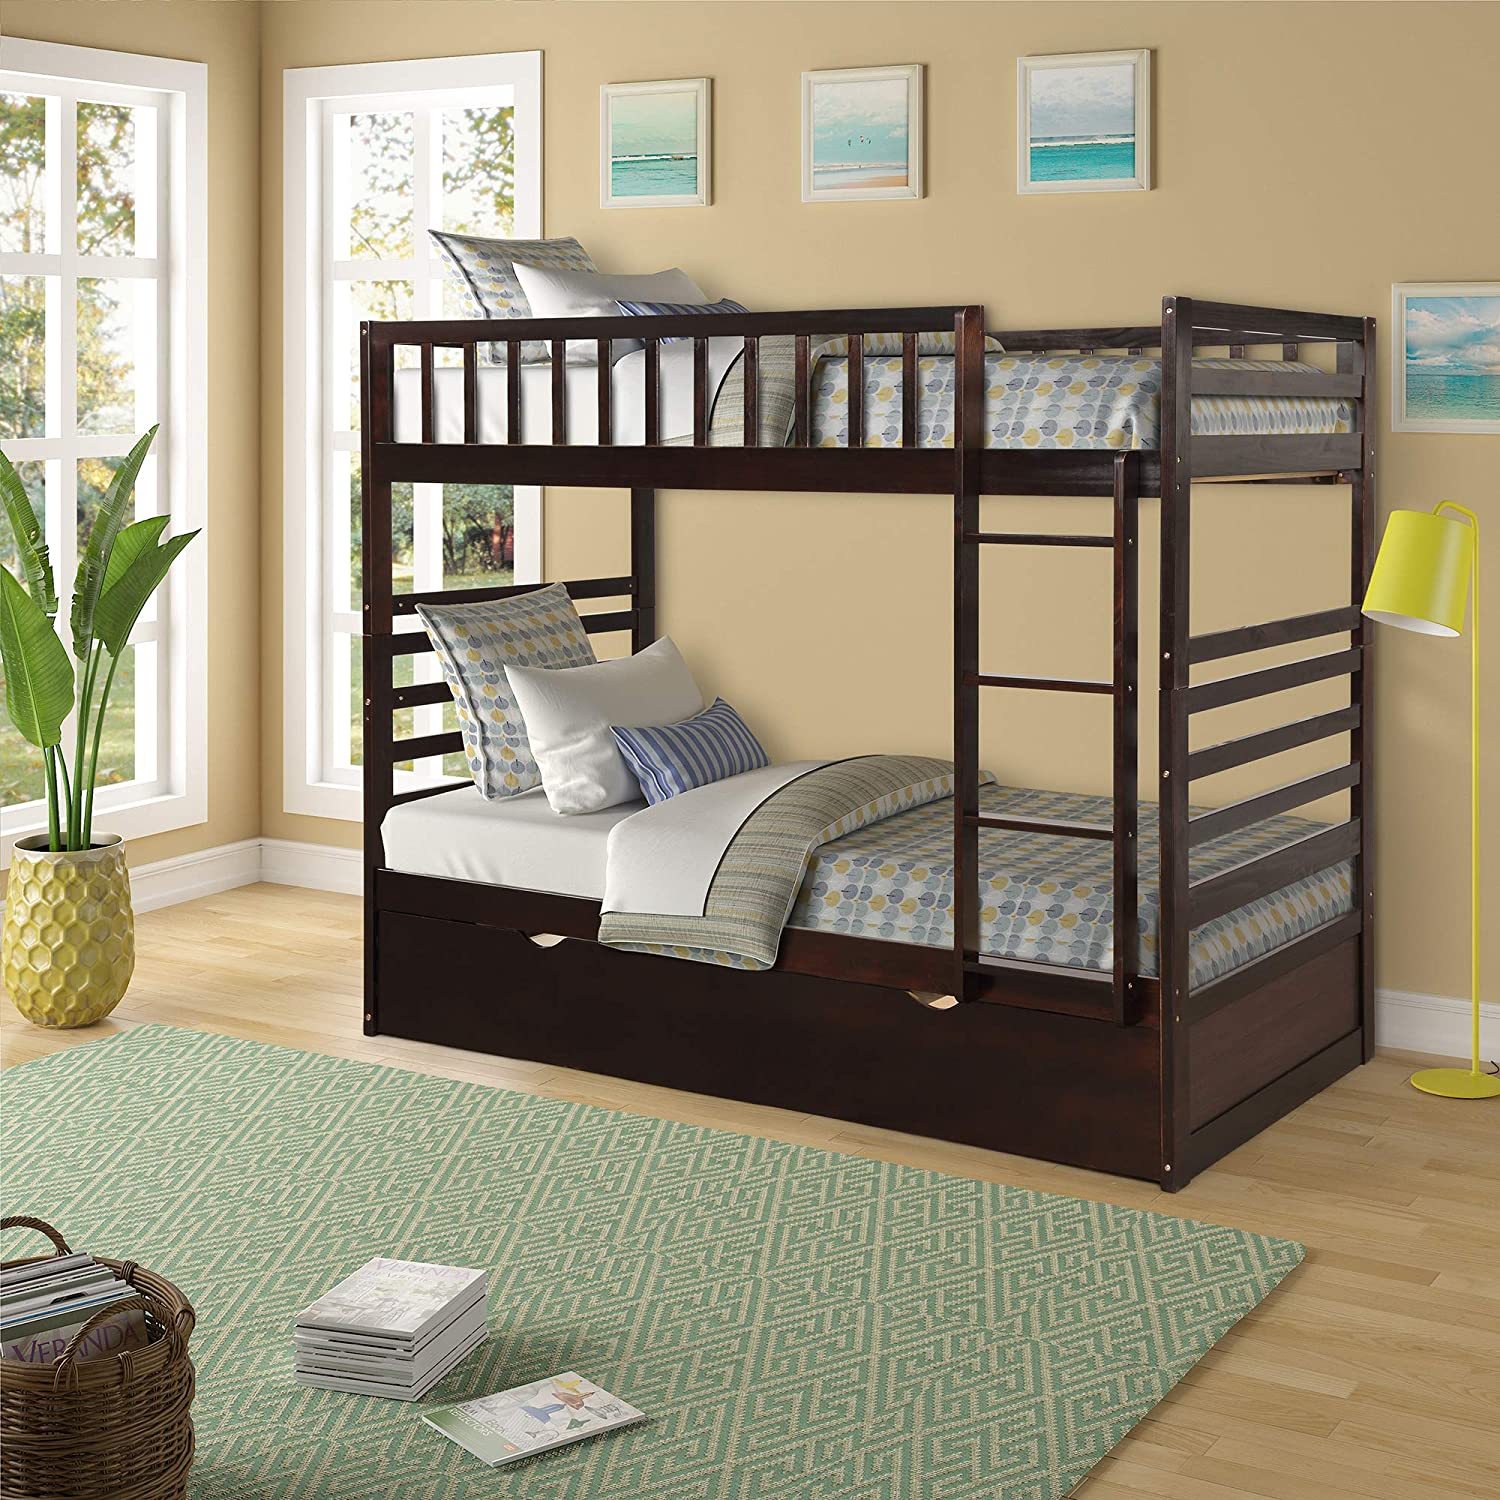 Merax Twin Over Twin Bunk Bed Solid Wood Twin Beds with Trundle Ladder and Guardrails for Kids Espresso